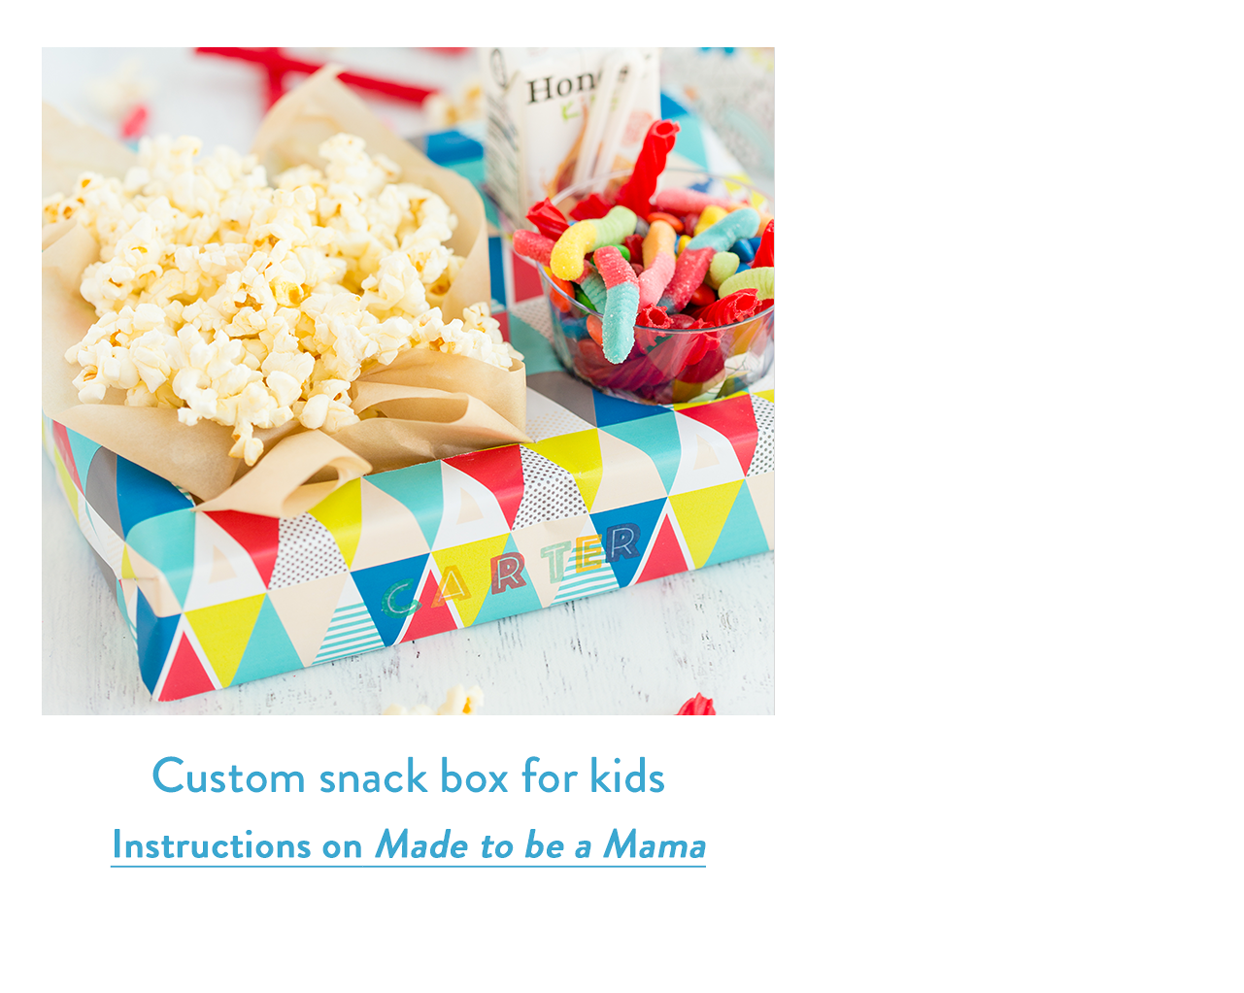 Custom snack box for kids